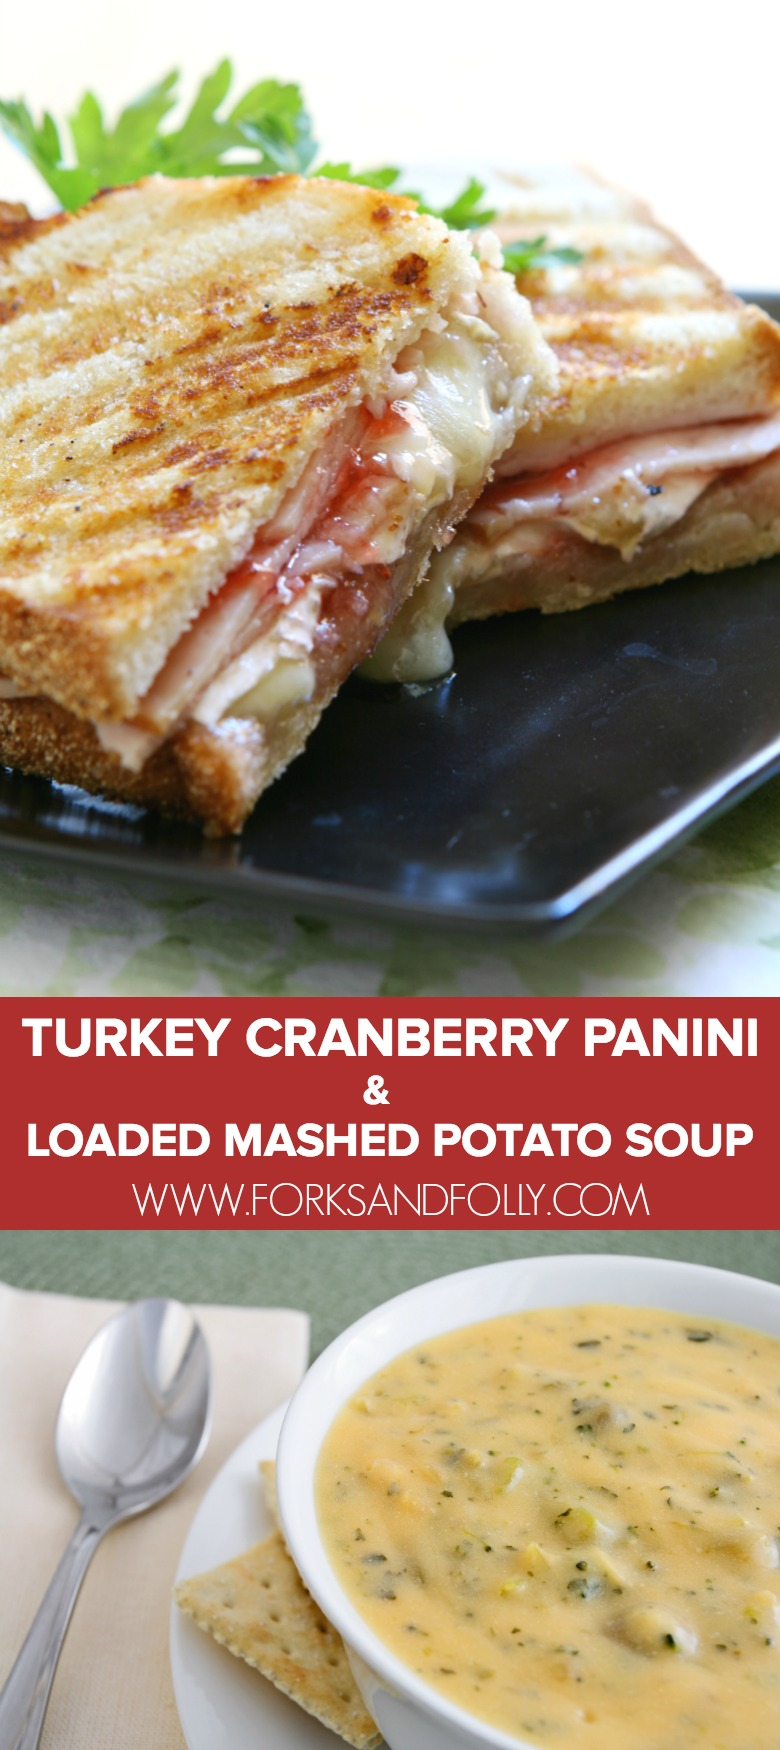 Thanksgiving Leftovers: Turkey Cranberry Swiss Panini and Loaded Mashed Potato Soup